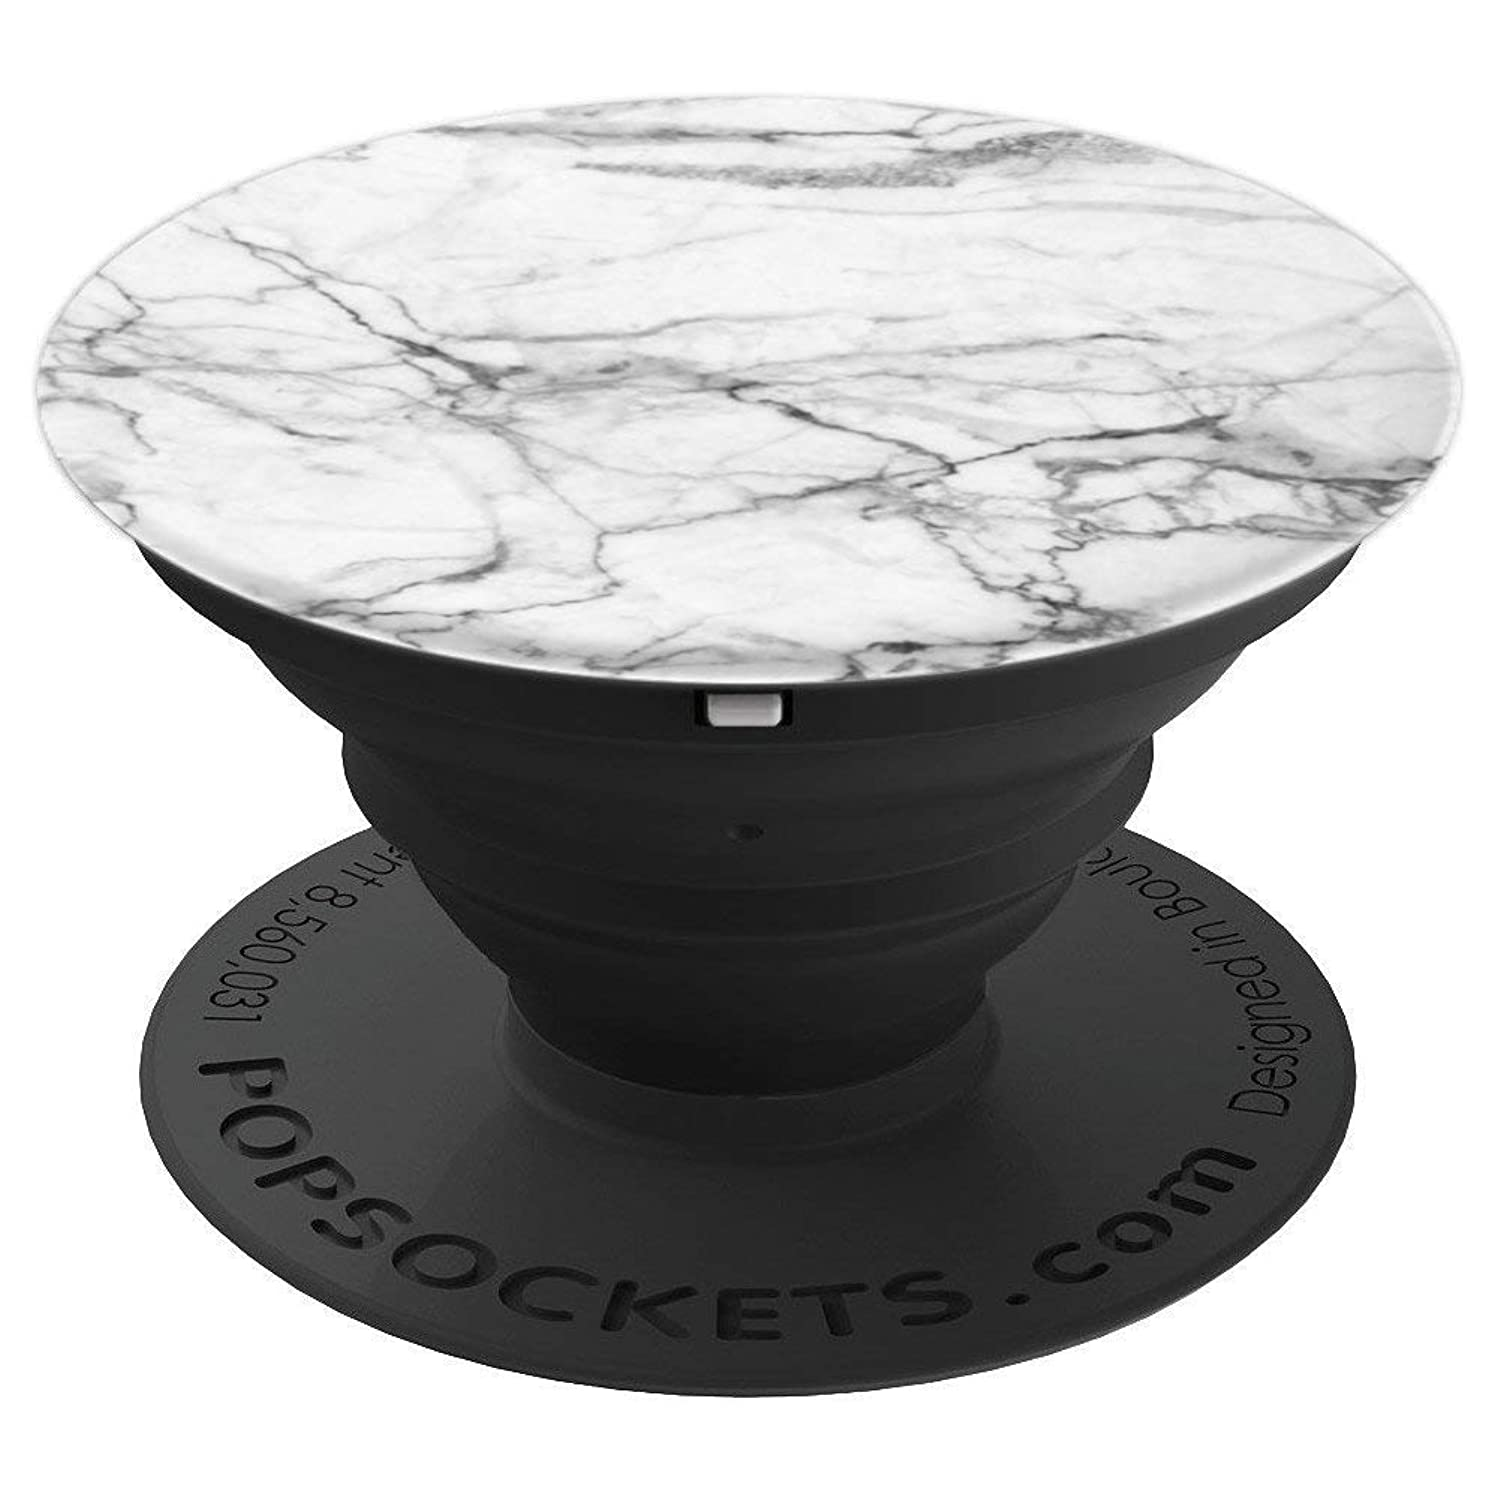 Dove White Marble - PopSockets Grip and Stand for Phones and Tablets